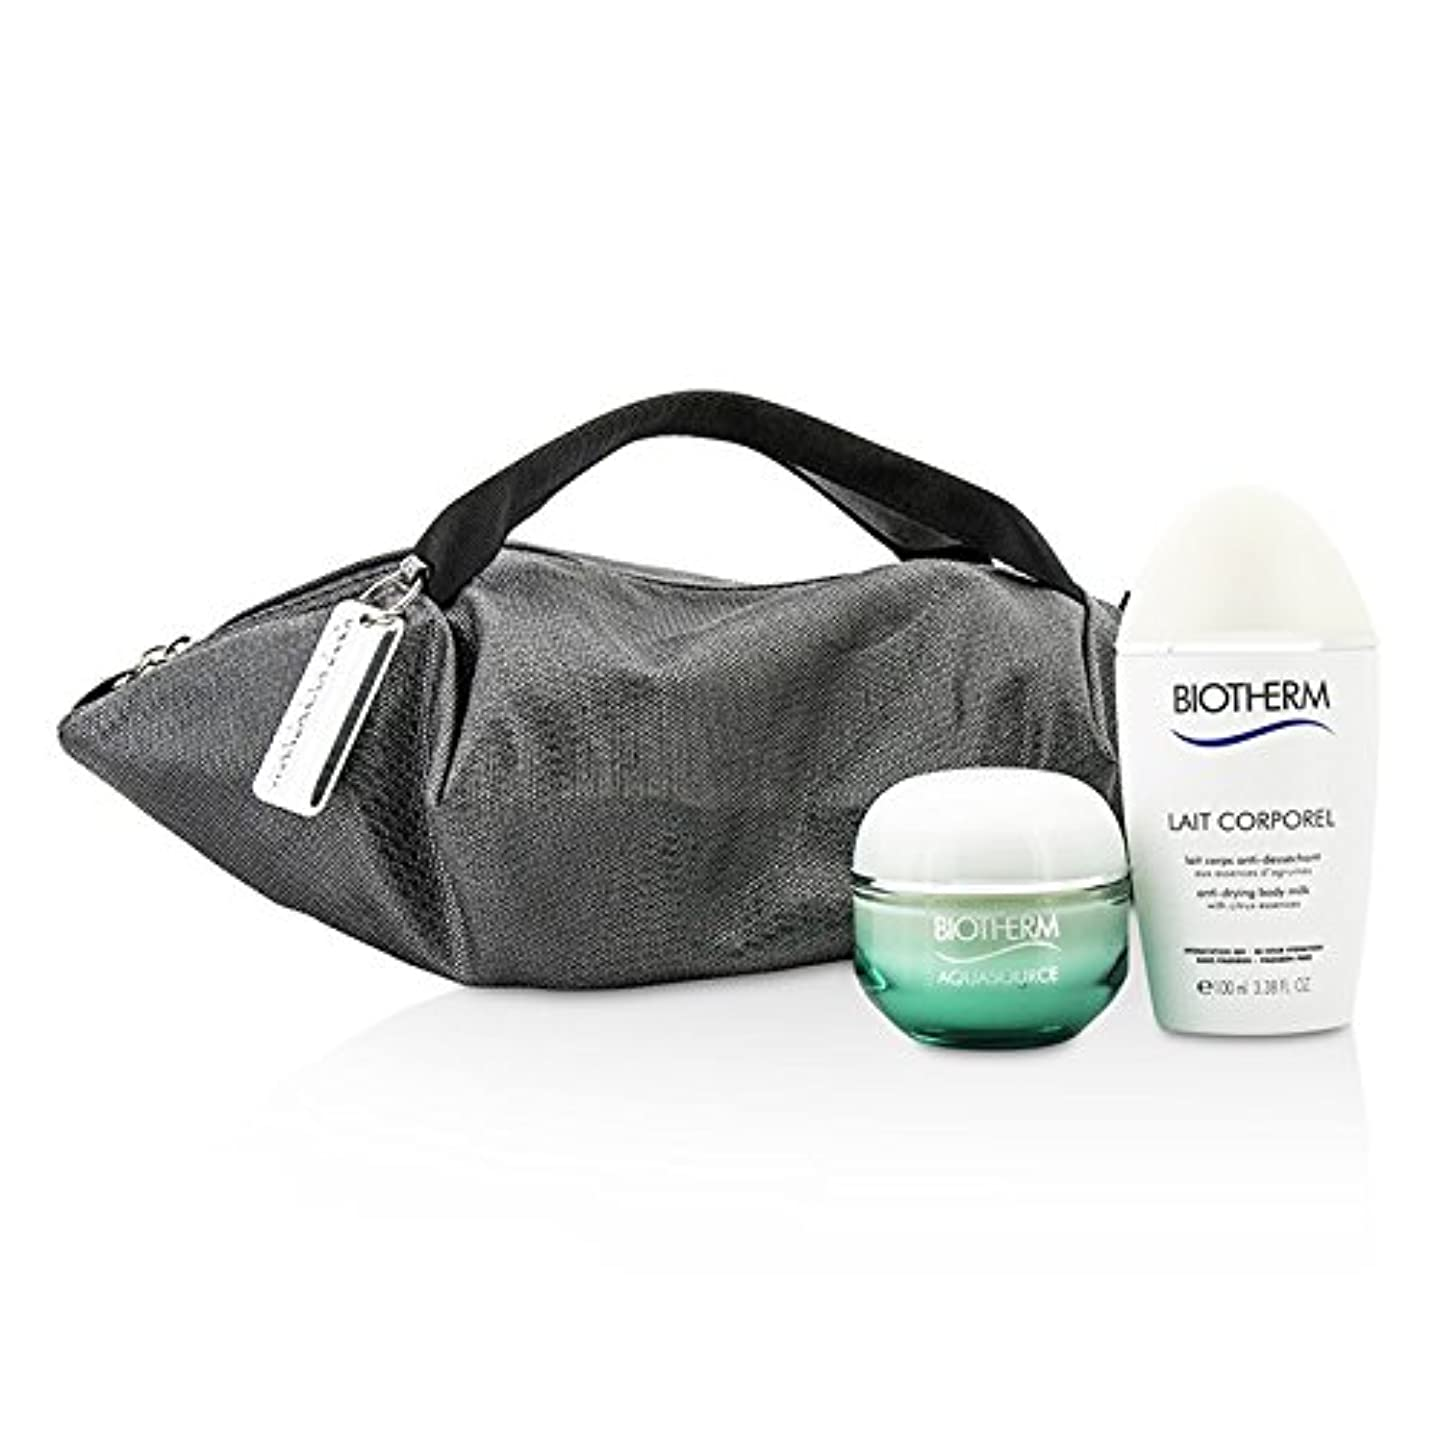 急いでメイエラ値するビオテルム Aquasource & Body Care X Mandarina Duck Coffret: Cream N/C 50ml + Anti-Drying Body Care 100ml + Handle Bag...